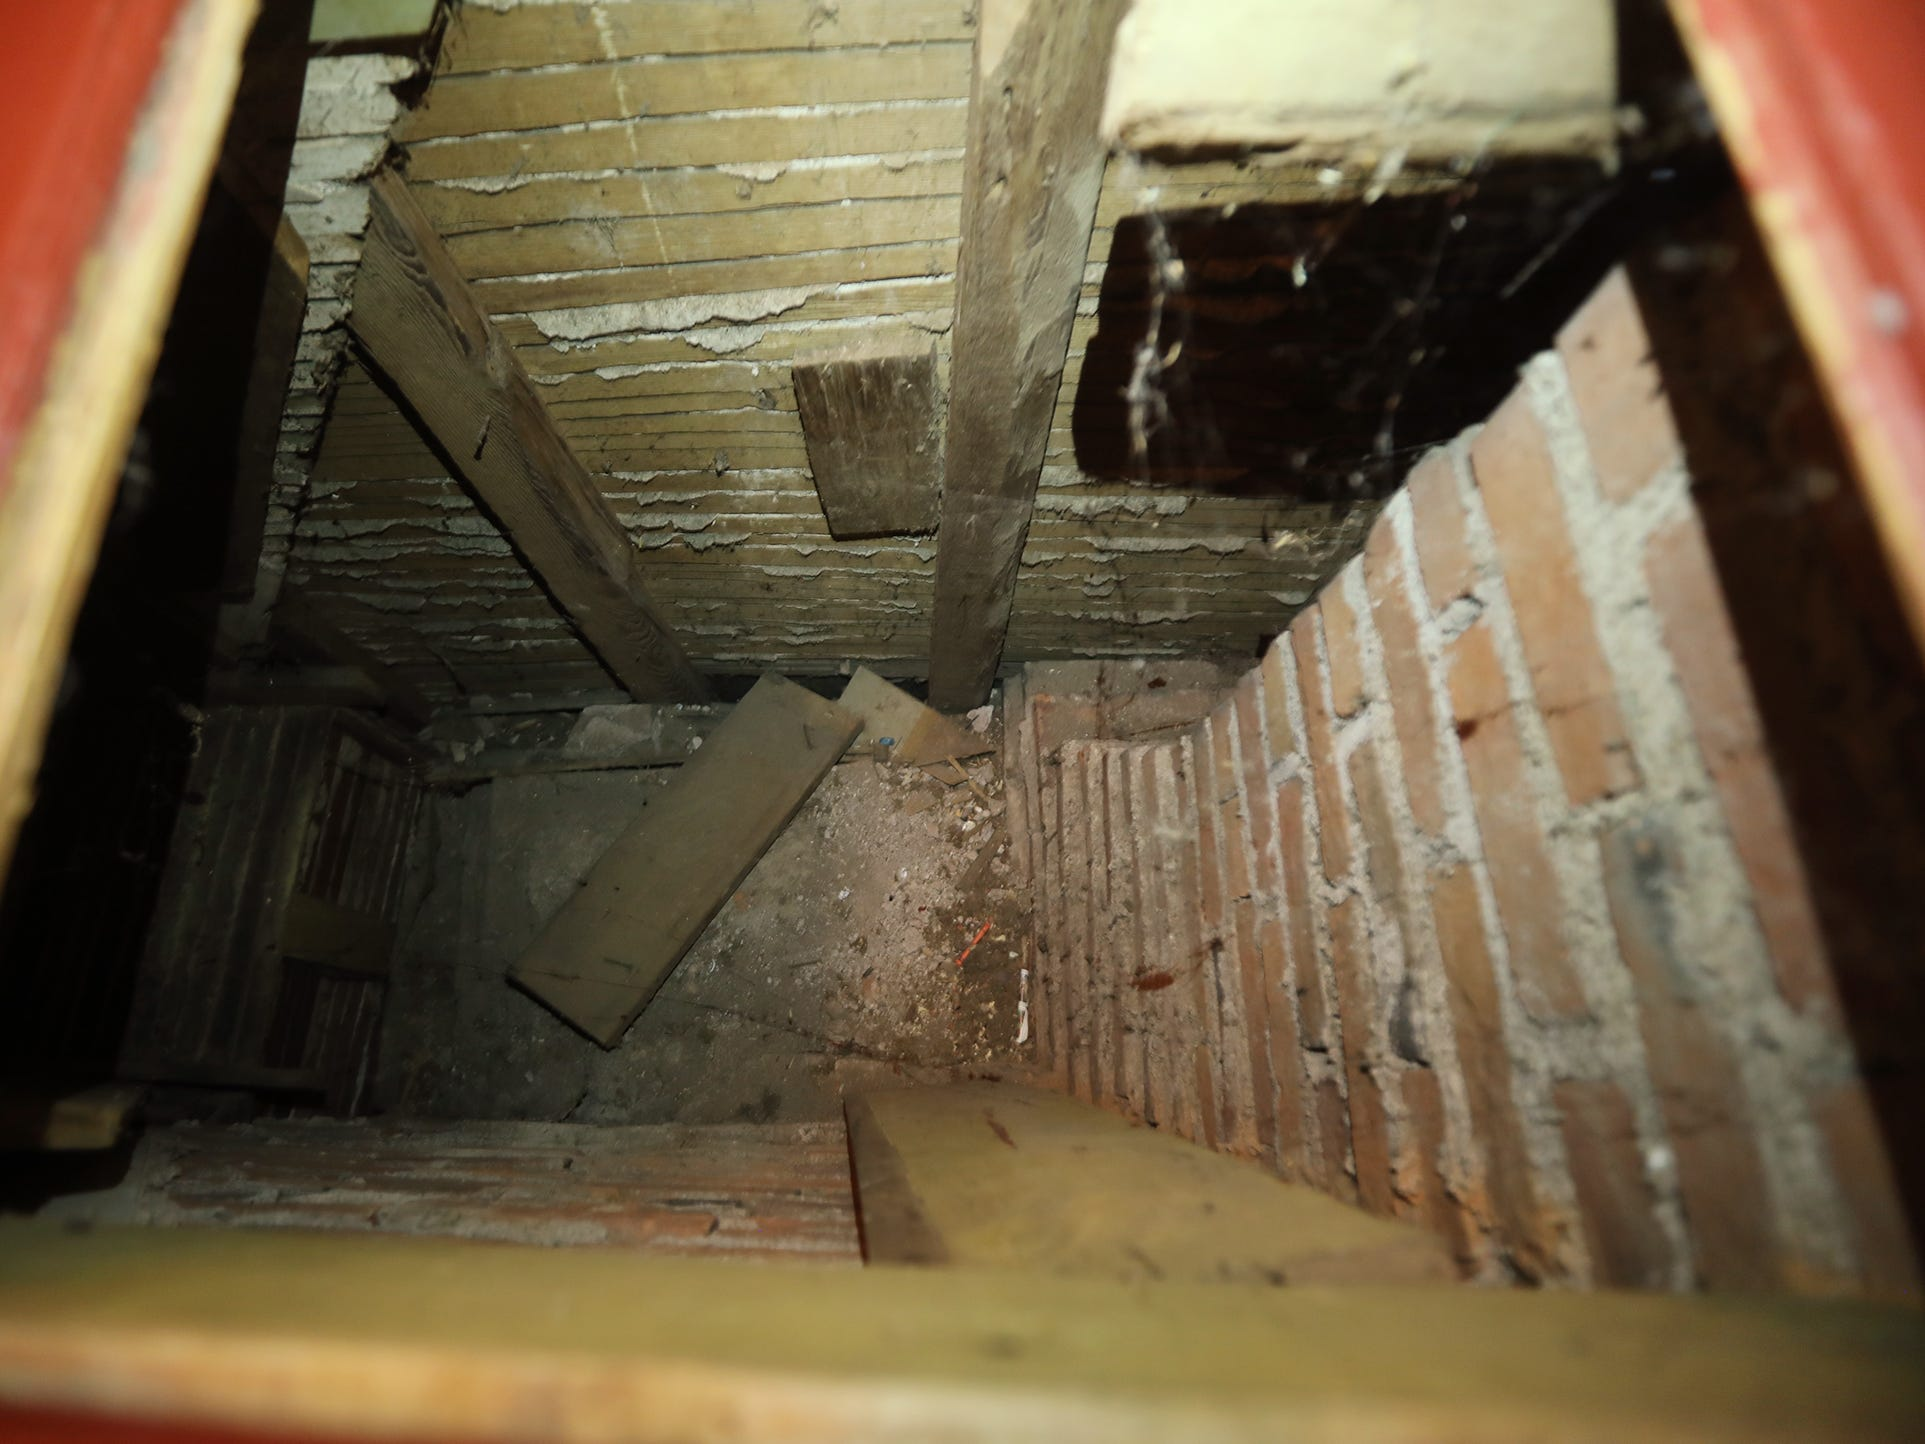 This hidden area located under floorboards at the top of the servants staircase was believed to be used to hide slaves traveling the Underground Railroad.